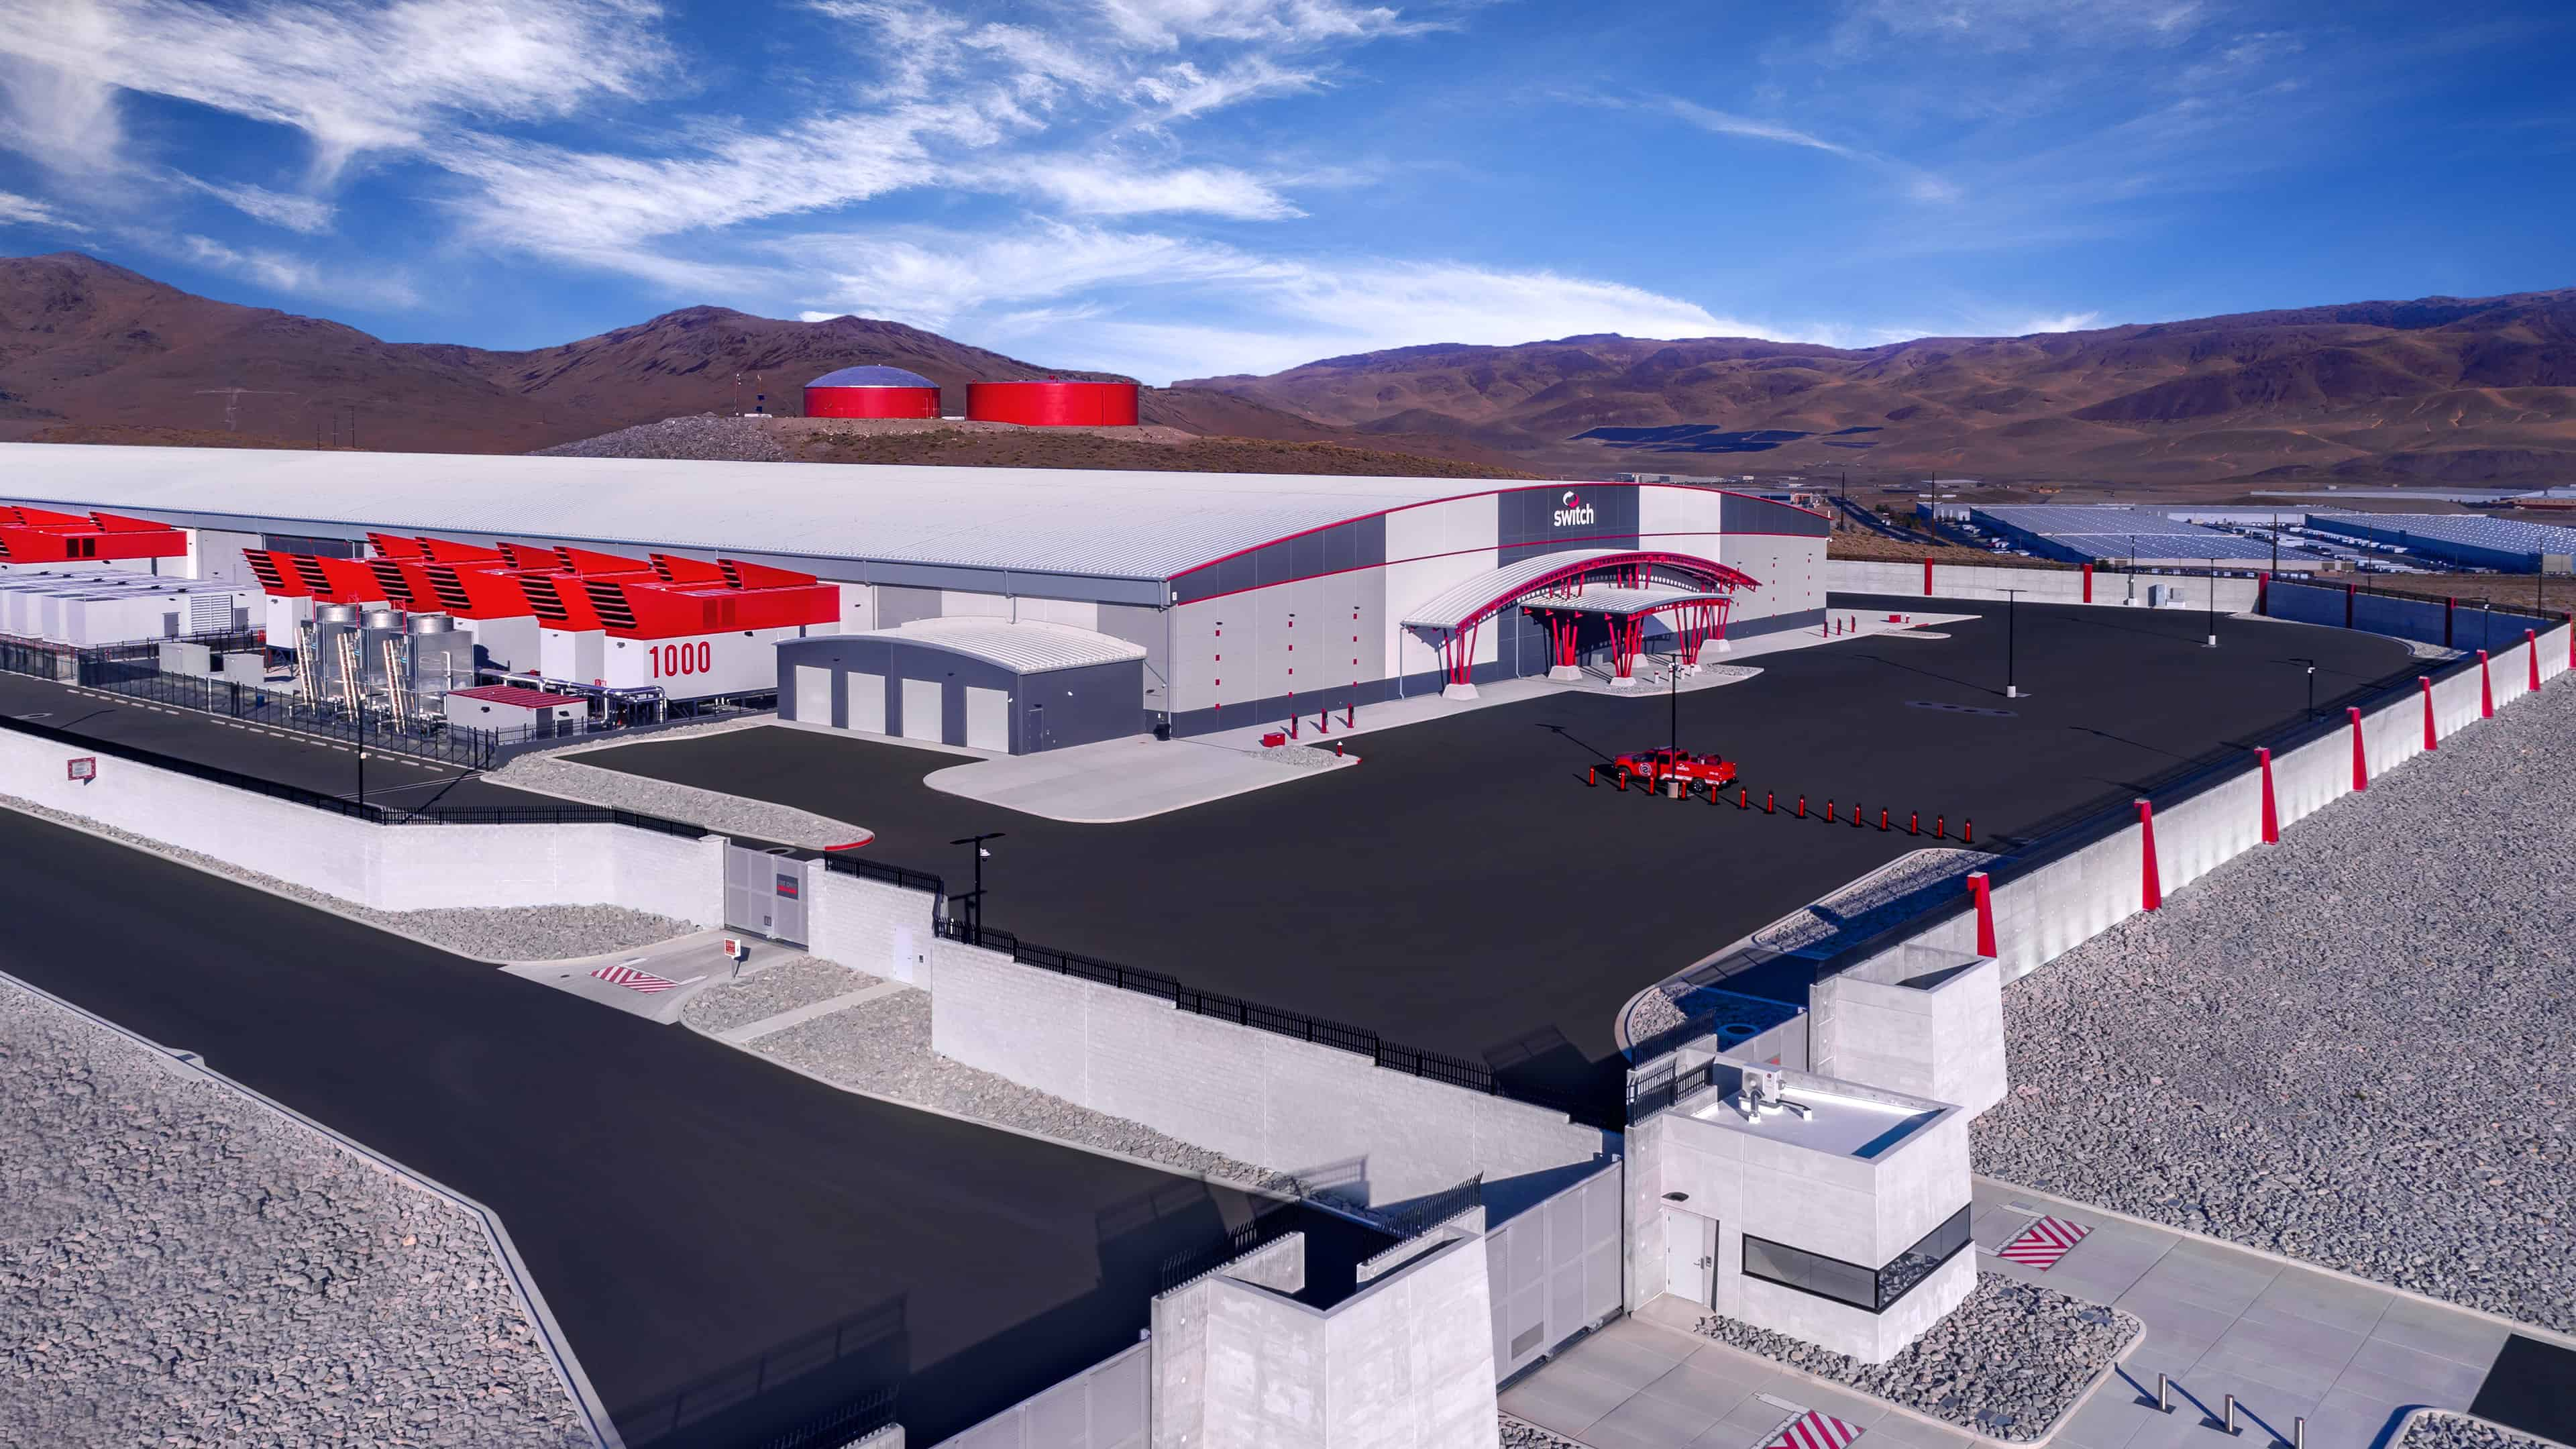 Switch Breaks Ground on Second and Third Tahoe Reno Data Centers Following Multi-Megawatt Expansions with Global E-Commerce and Semiconductor Clients